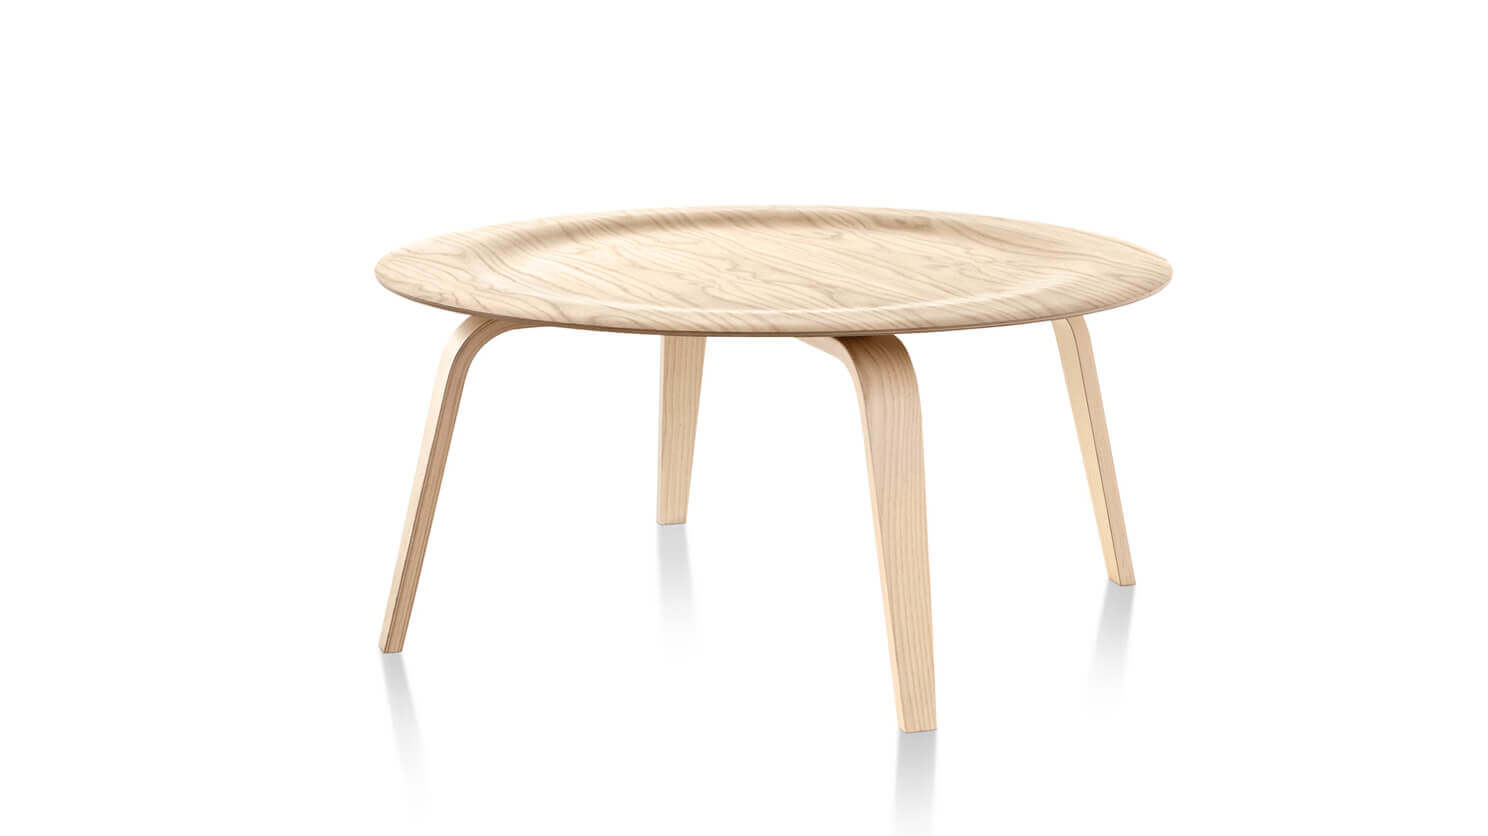 Eames Molded Plywood Coffee Table Eq3 throughout sizing 1488 X 836